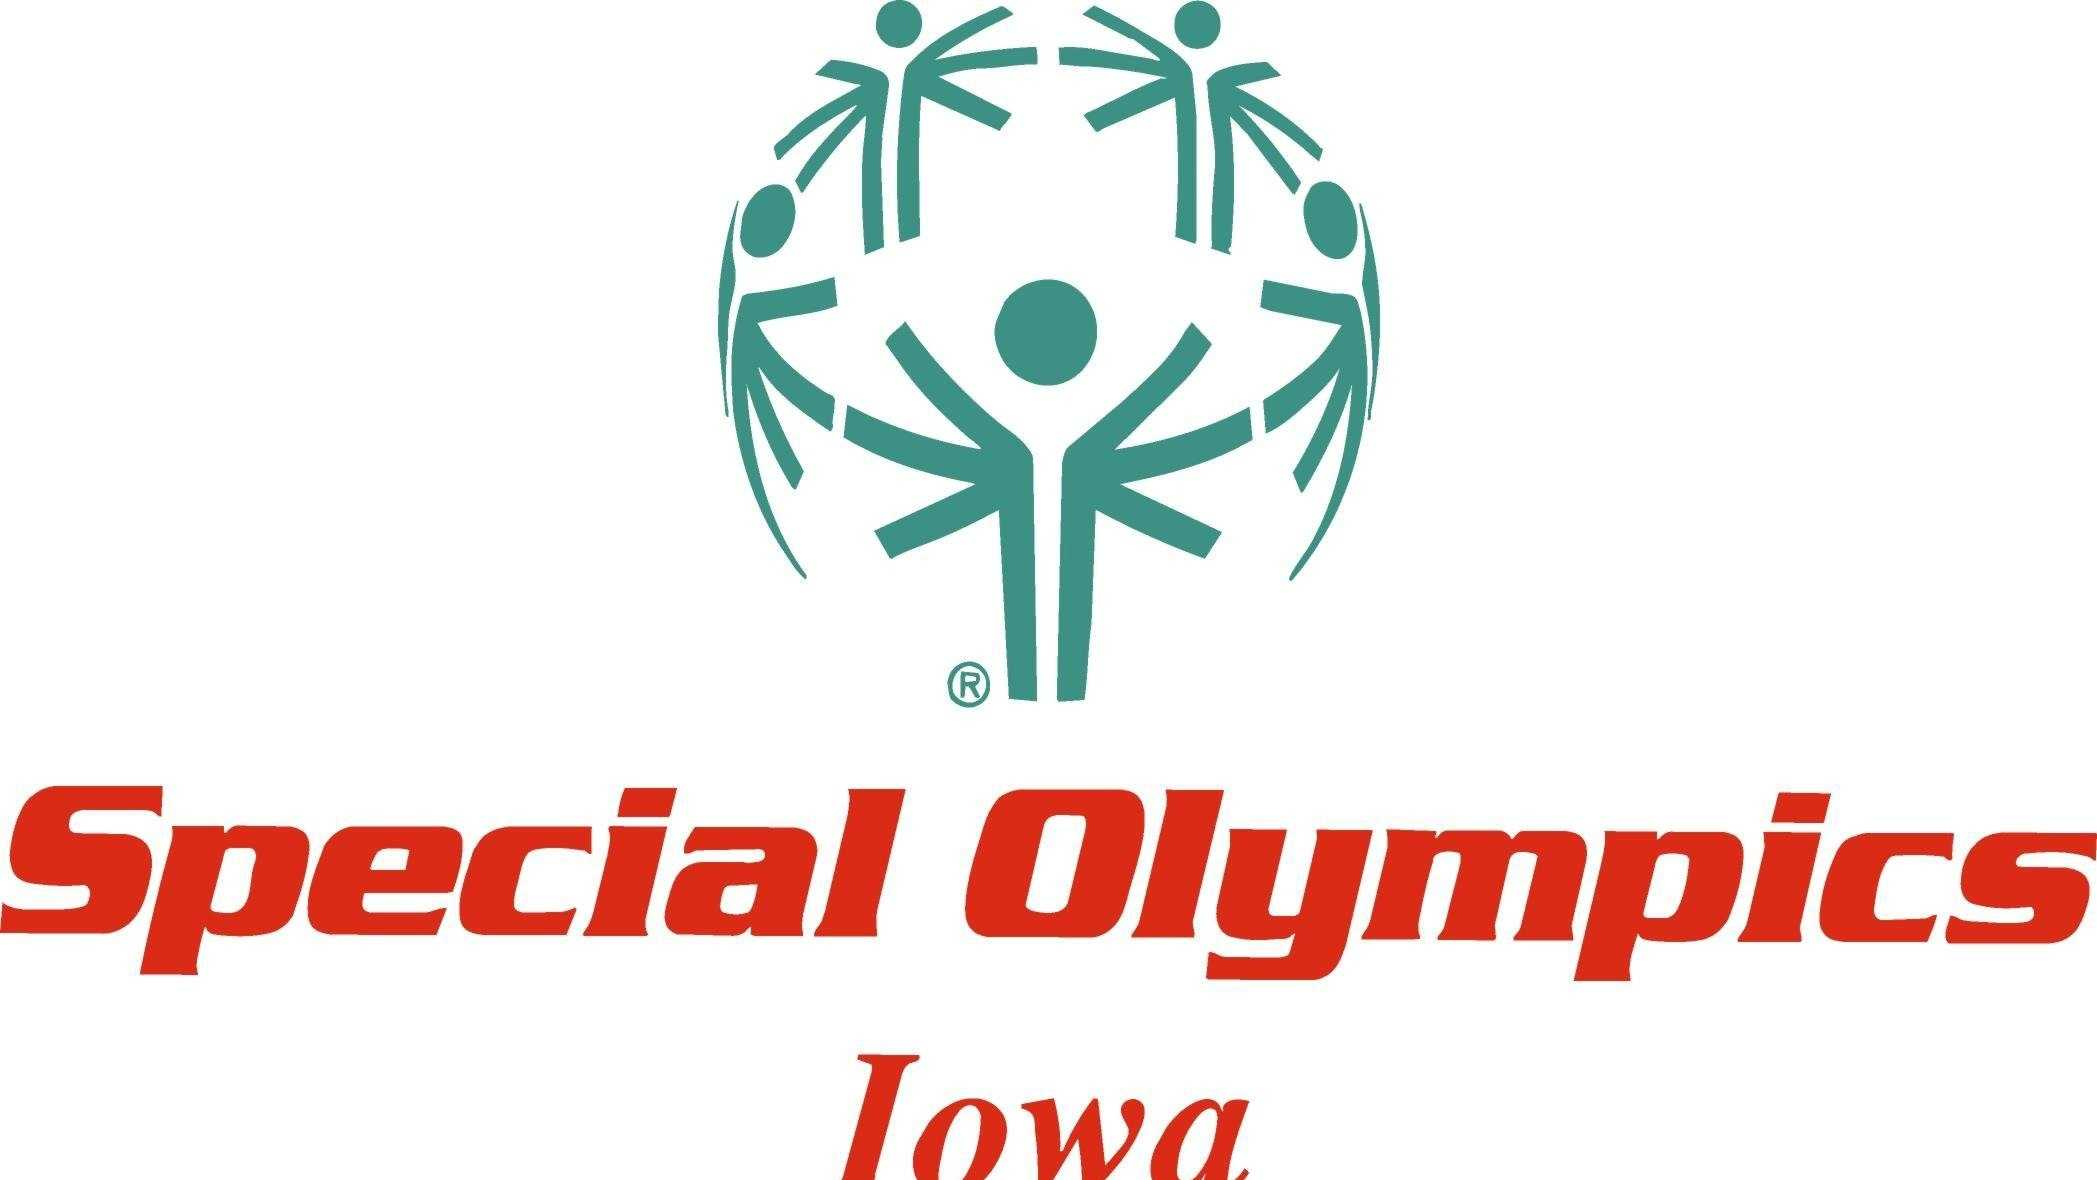 Special Olympics Iowa has a chance to receive $25,000. They just need some online support.